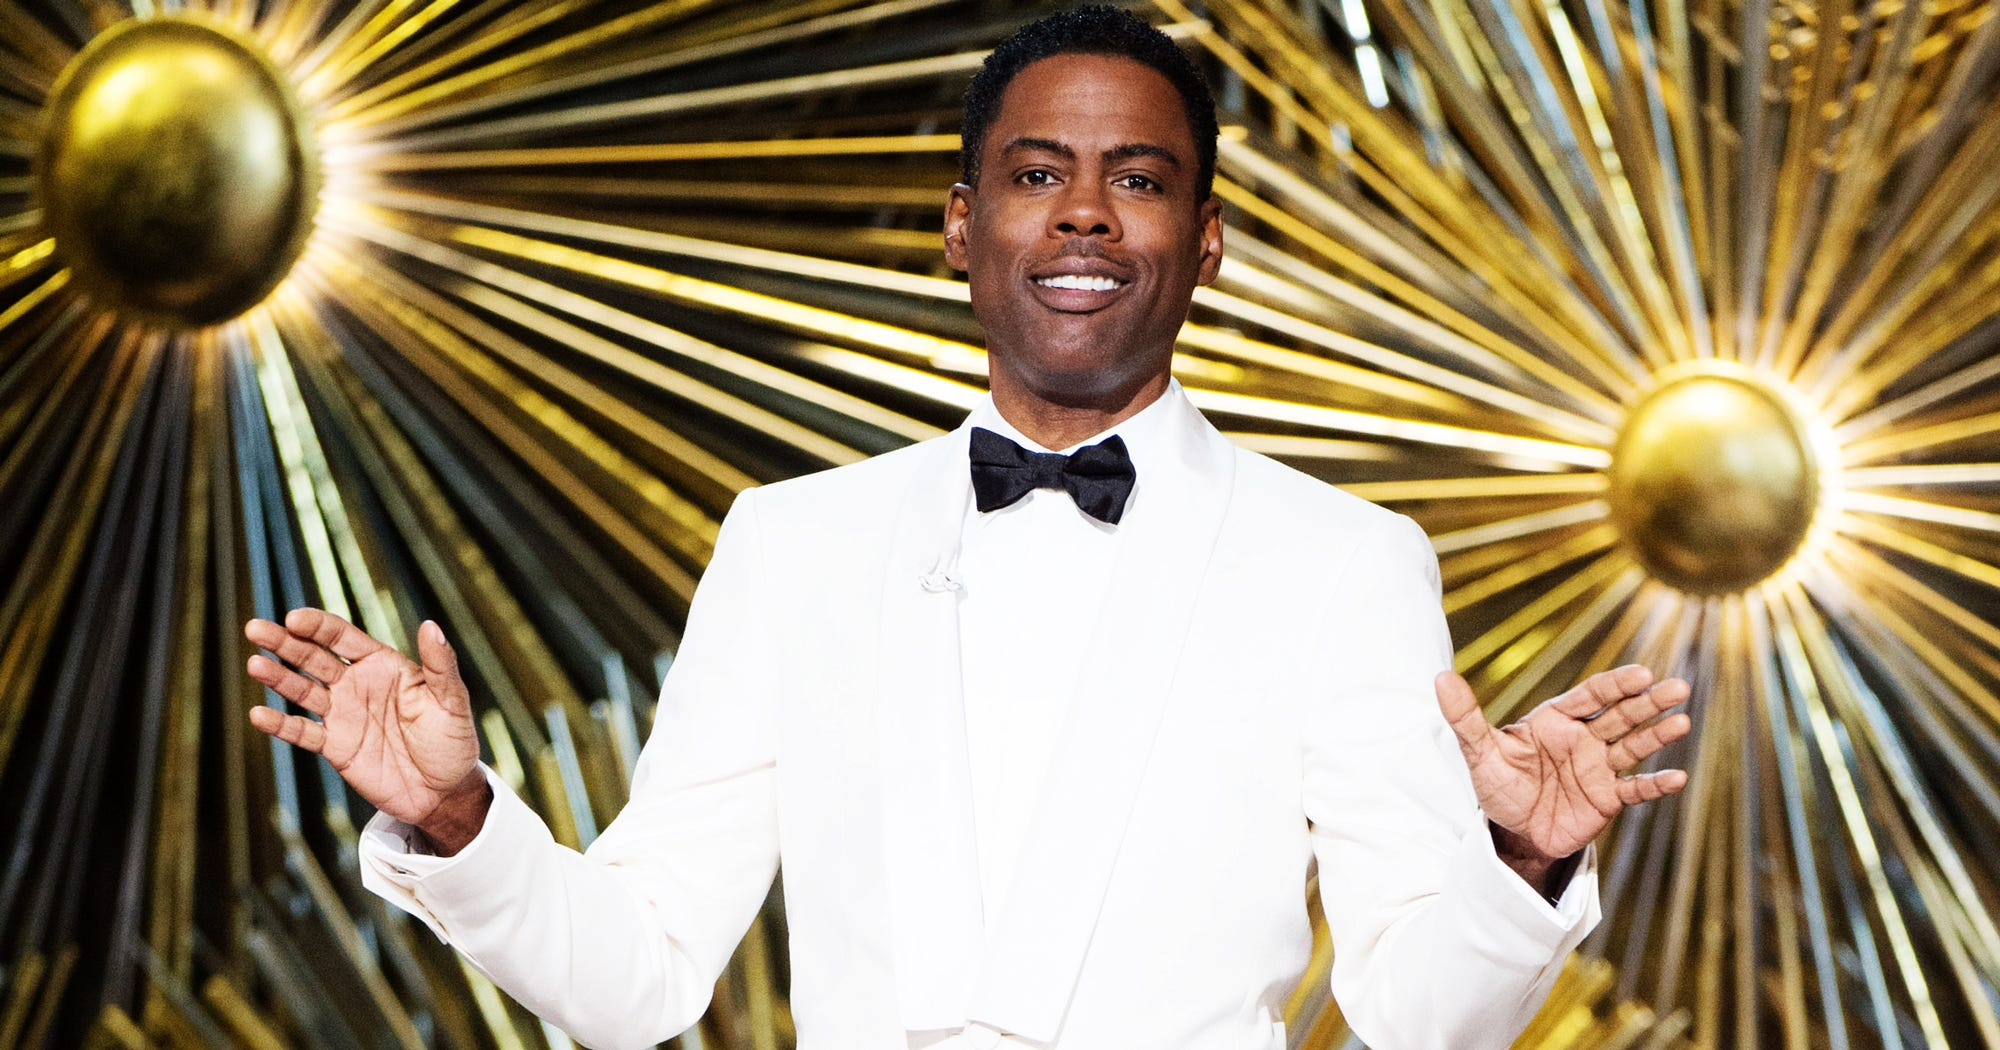 What Chris Rock Got Wrong About #AskHerMore